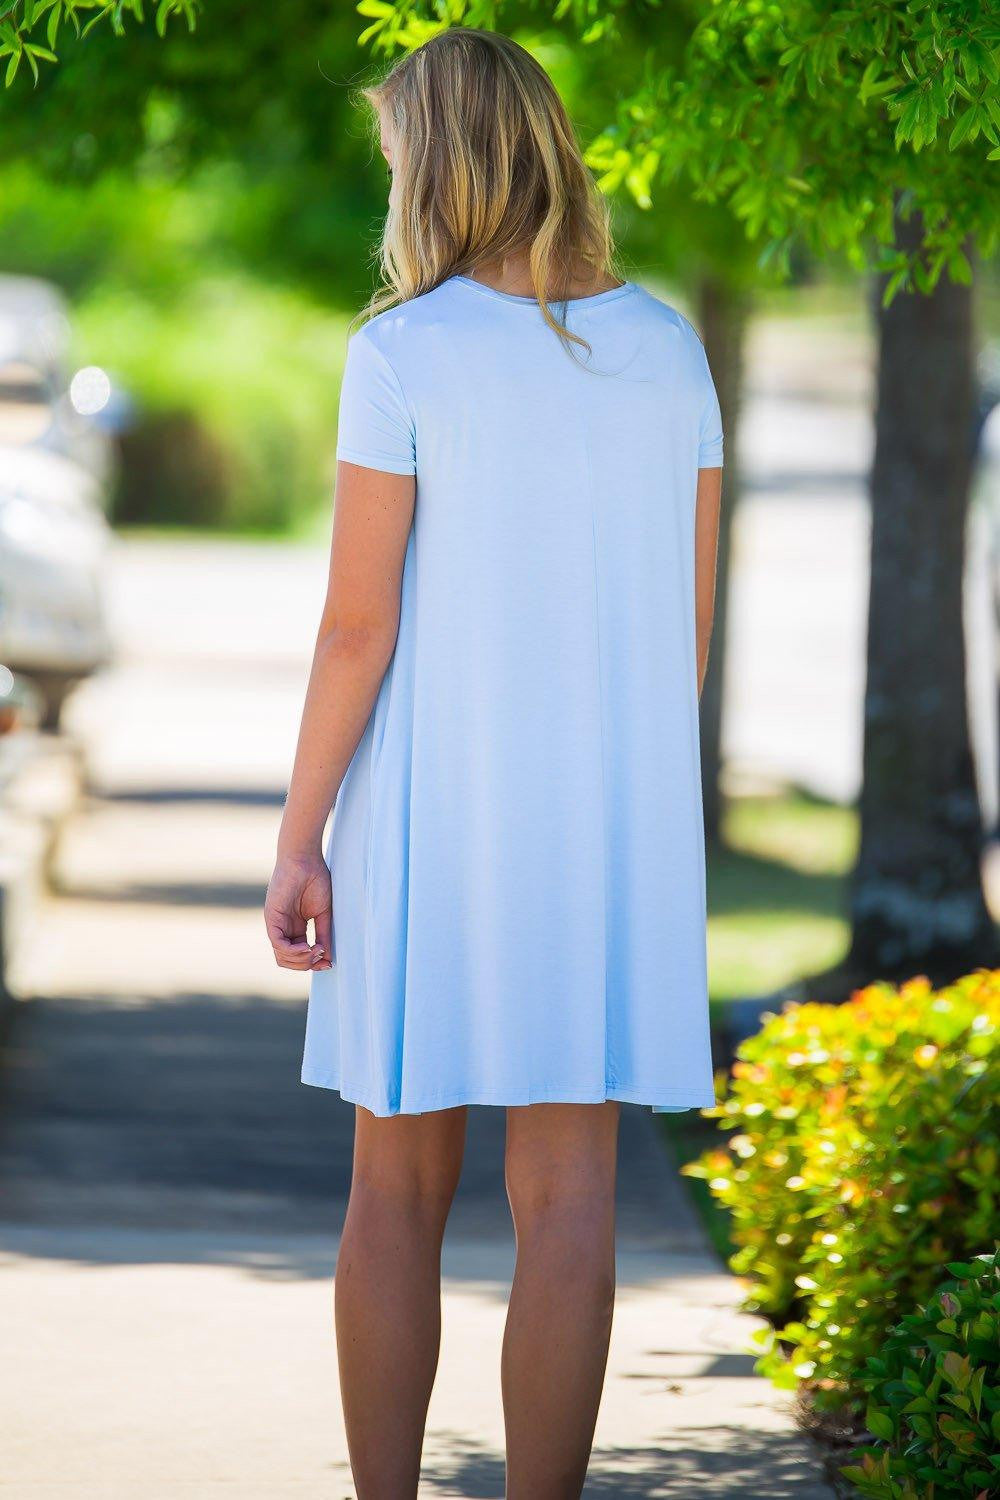 Piko Short Sleeve Swing Dress - Light Blue - Piko Clothing